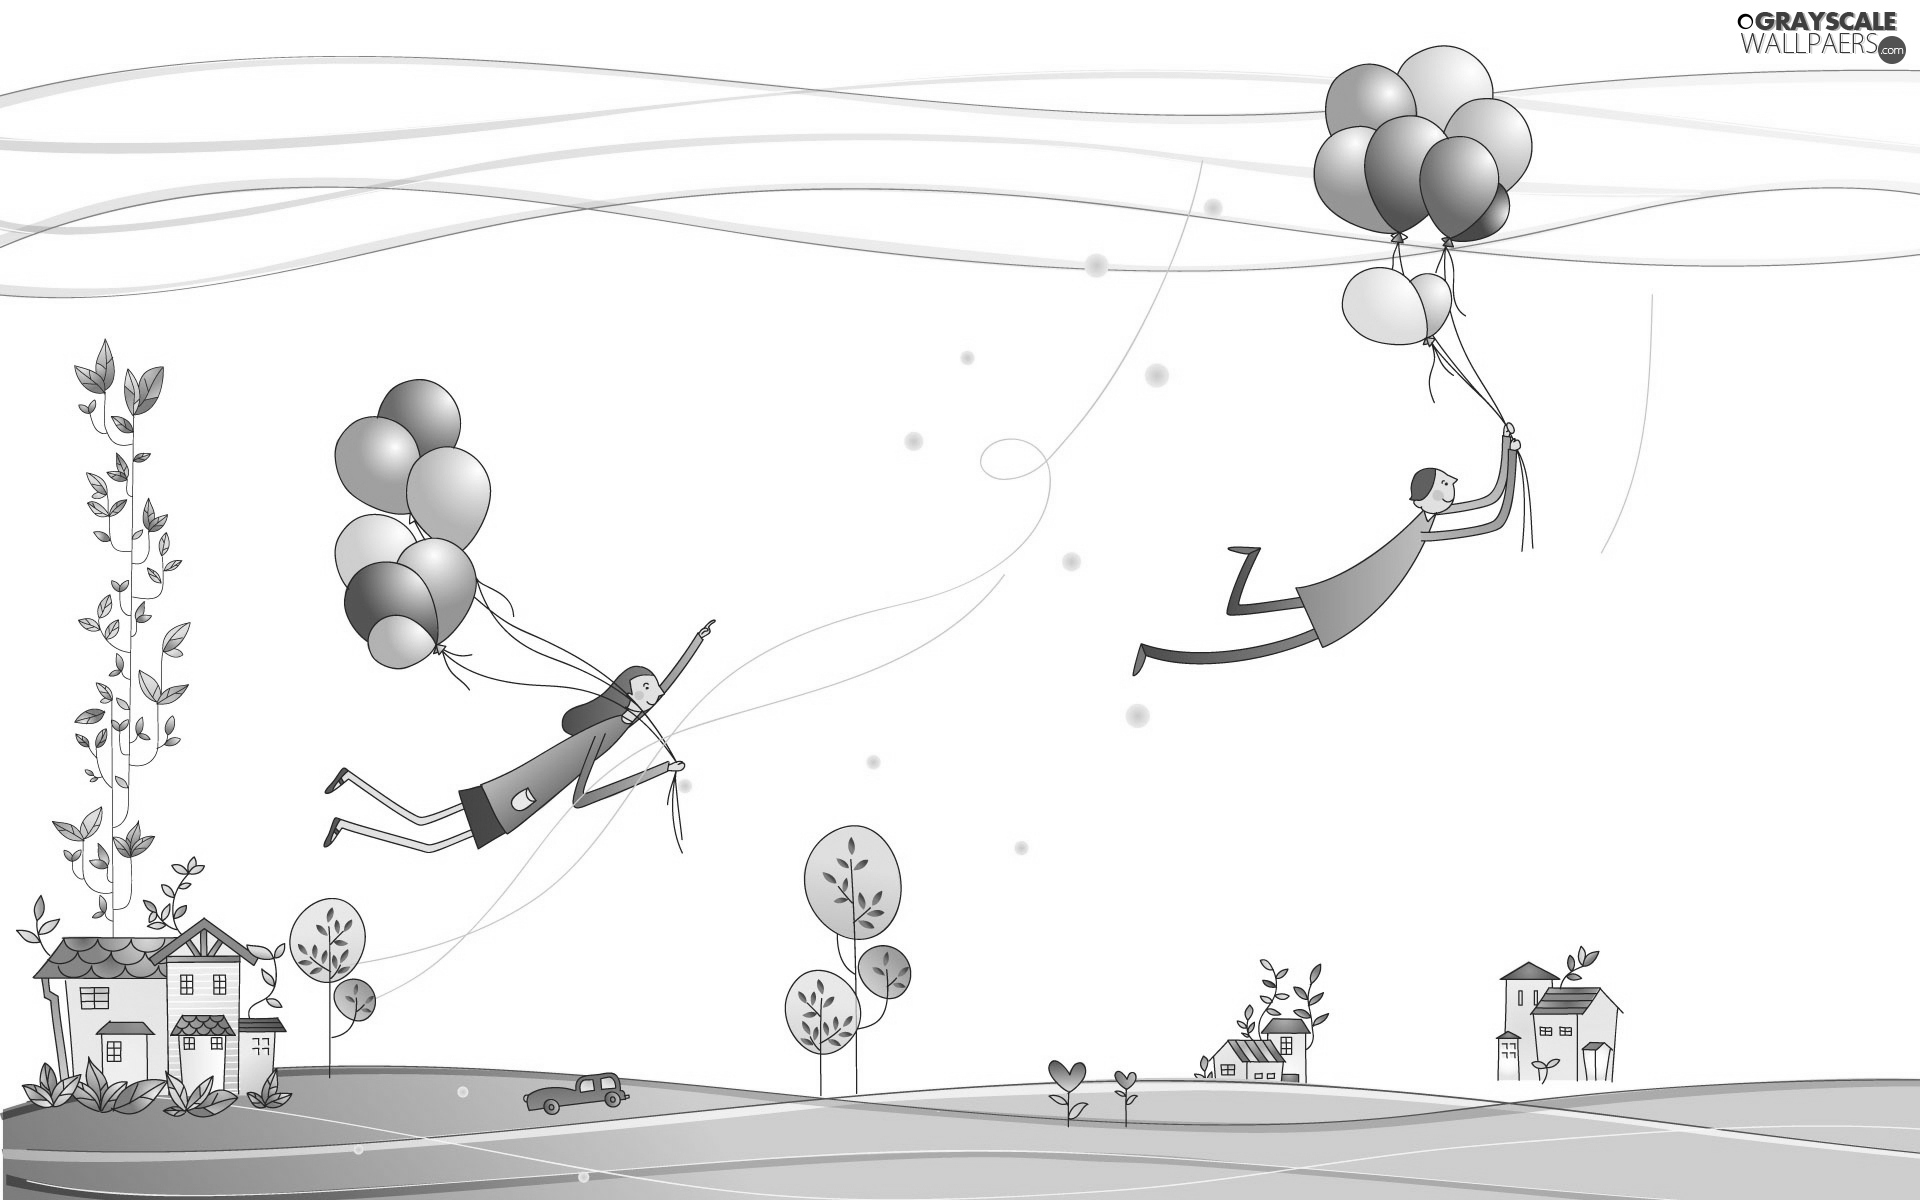 flight, Drawing, lovers, Balloons, Steam